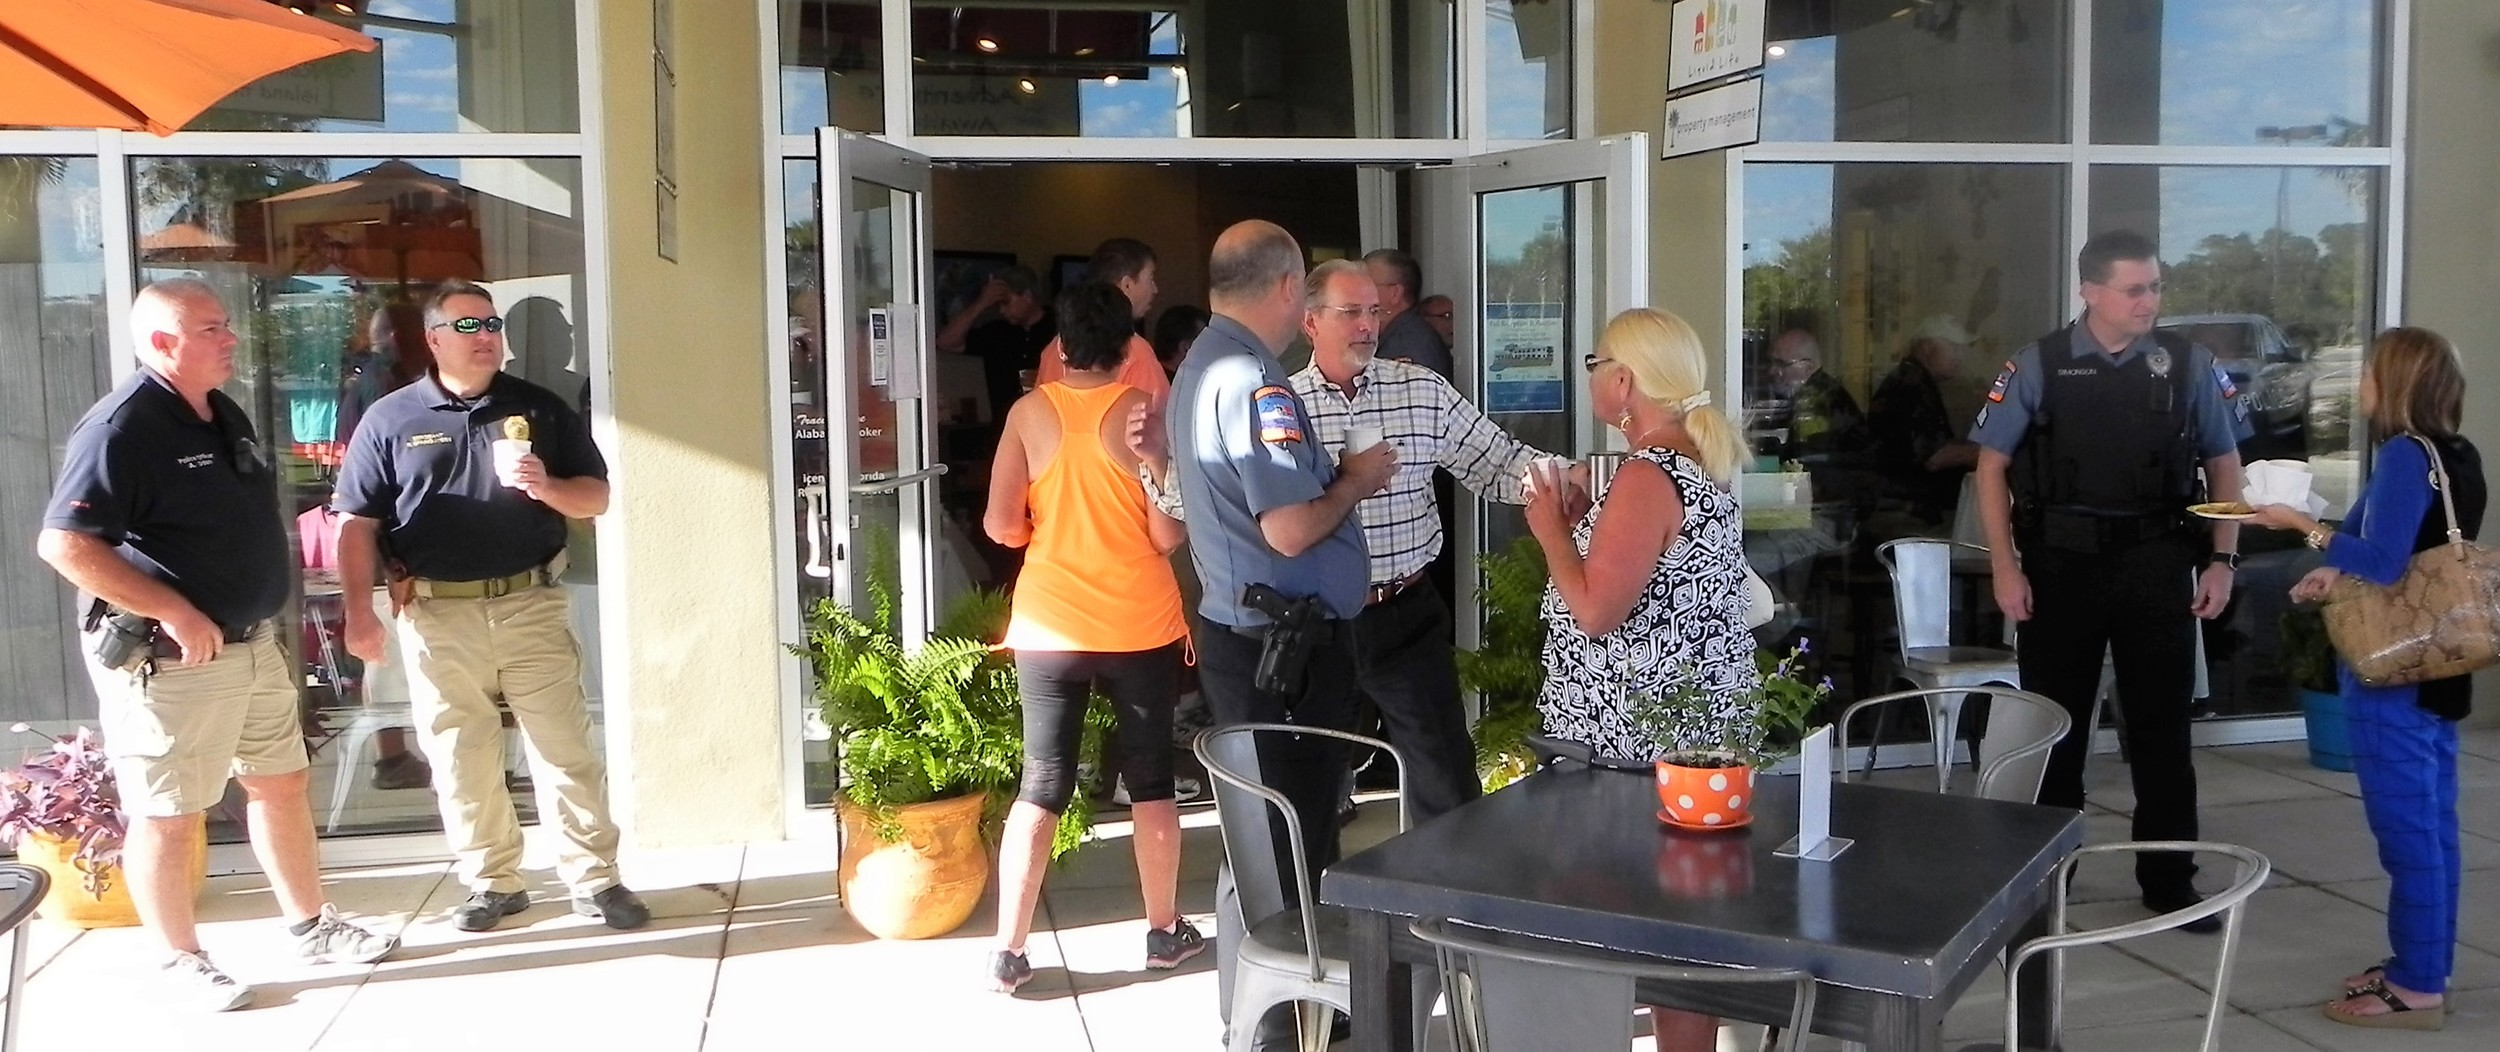 A nice crowd 